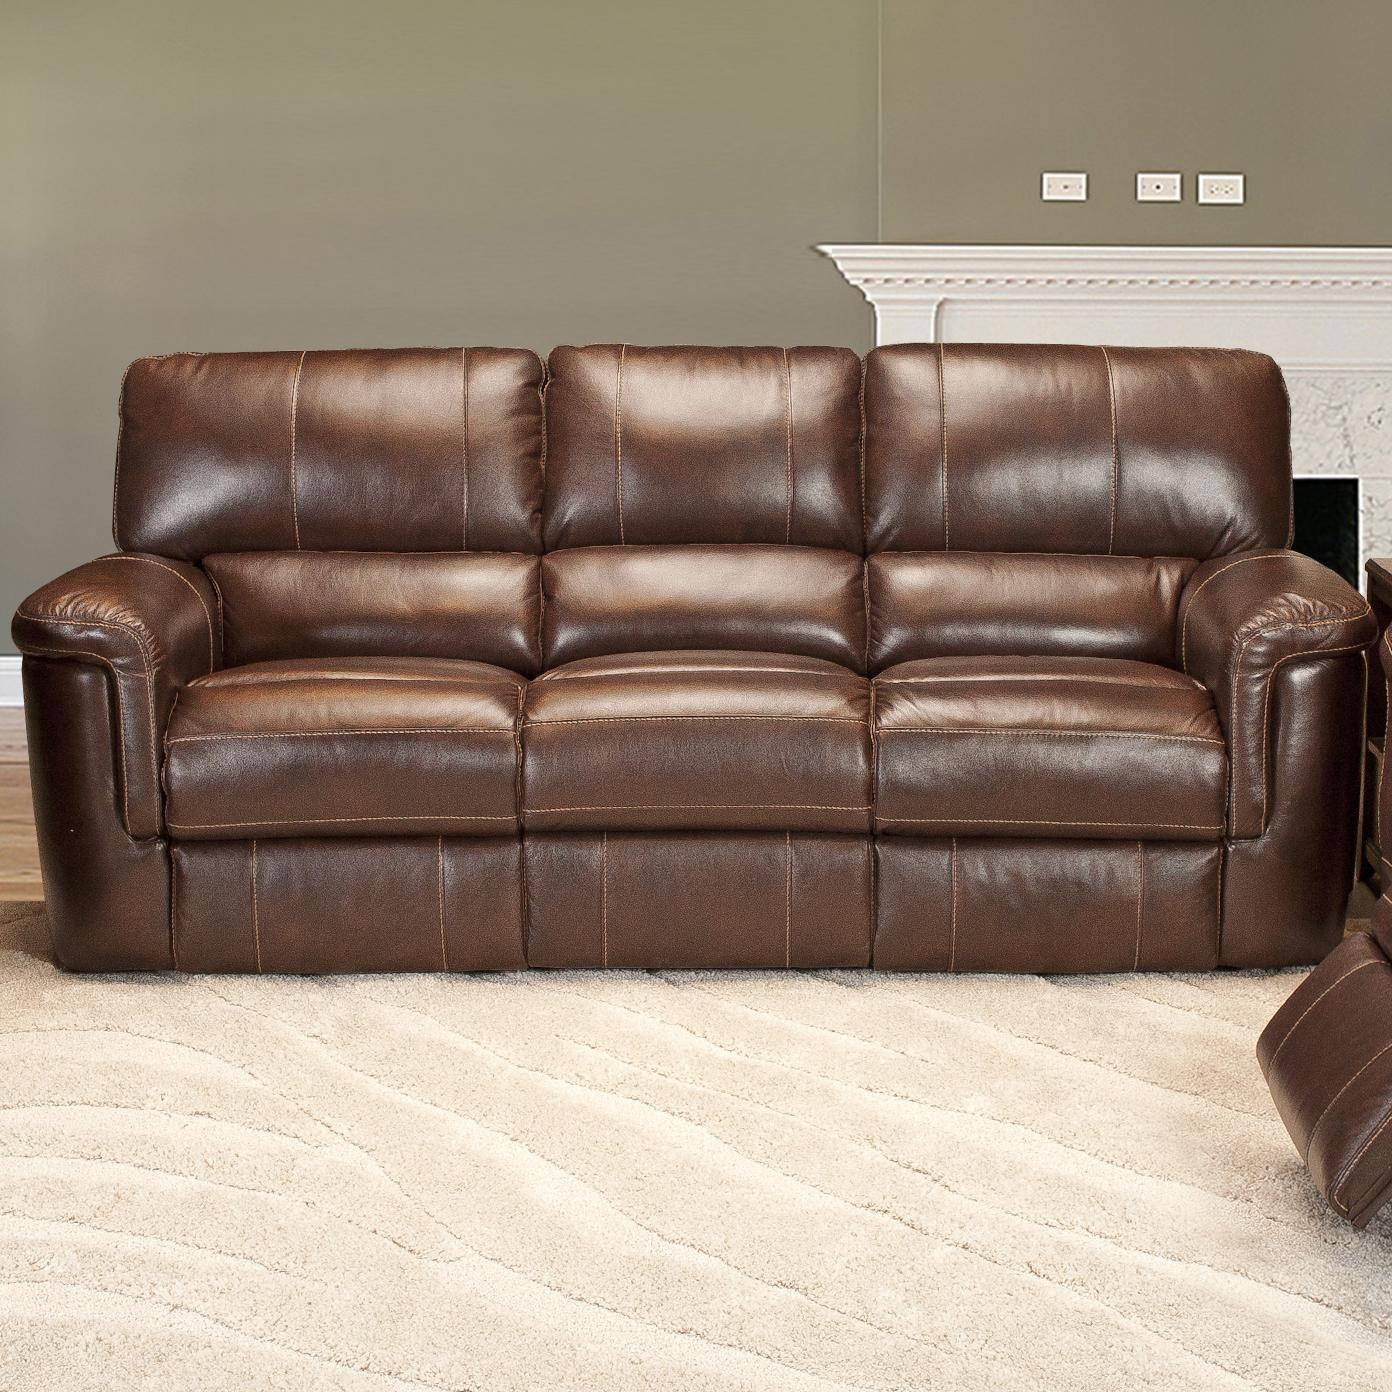 Parker Living Hitchcock Casual Duel Power Reclining Sofa - Item Number: MHIT-832P-CI